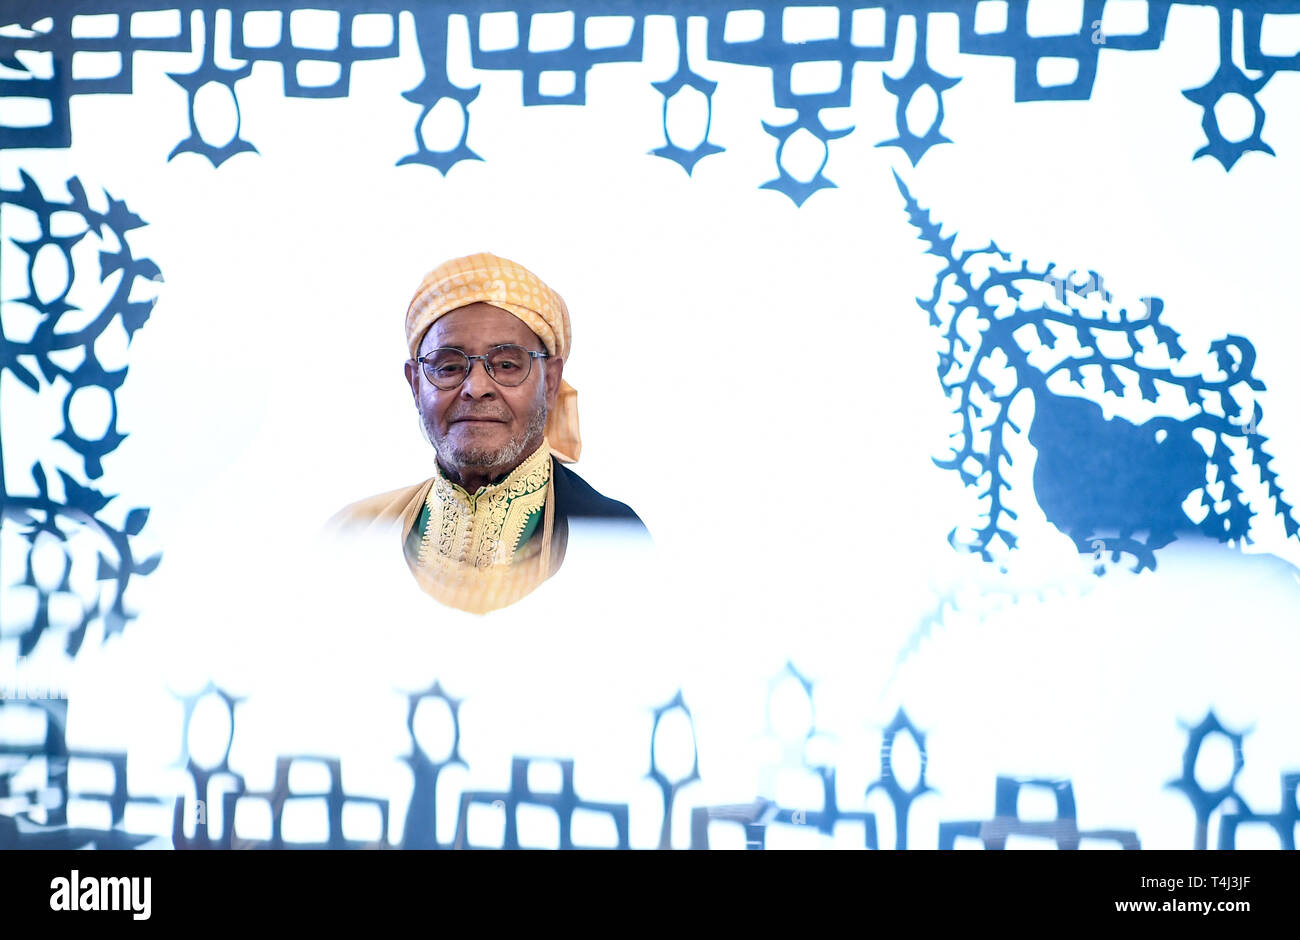 17 April 2019, Berlin: Storyteller El Haj Ahmed Ezzarghani stands in